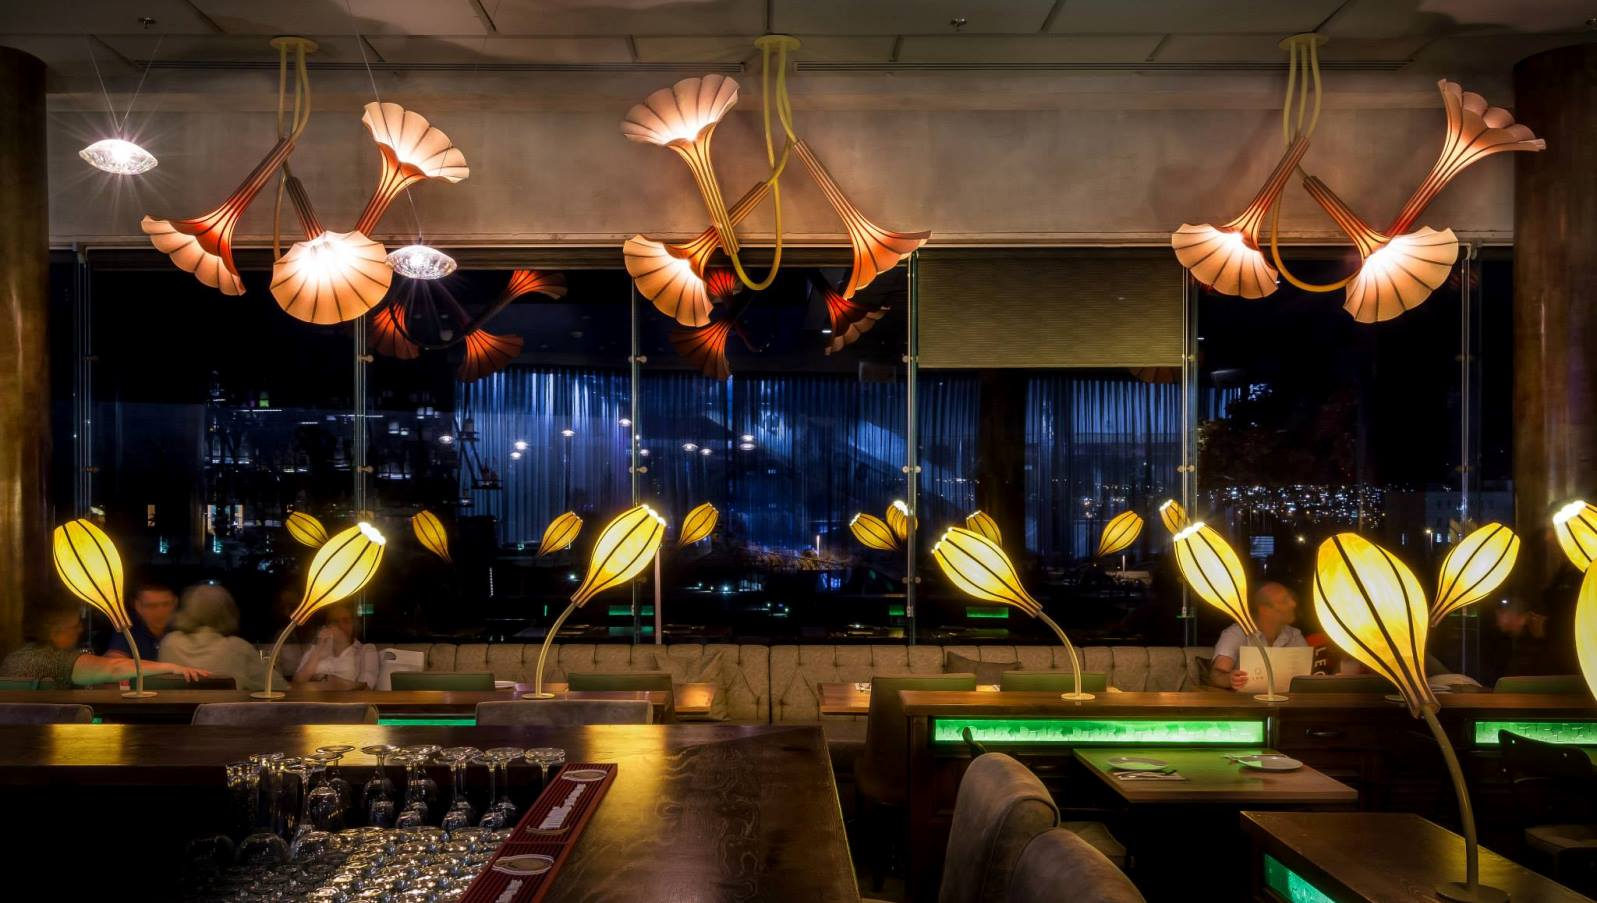 Studio Mabua lighting installed in a restaurant. Photography by Itai Aviran